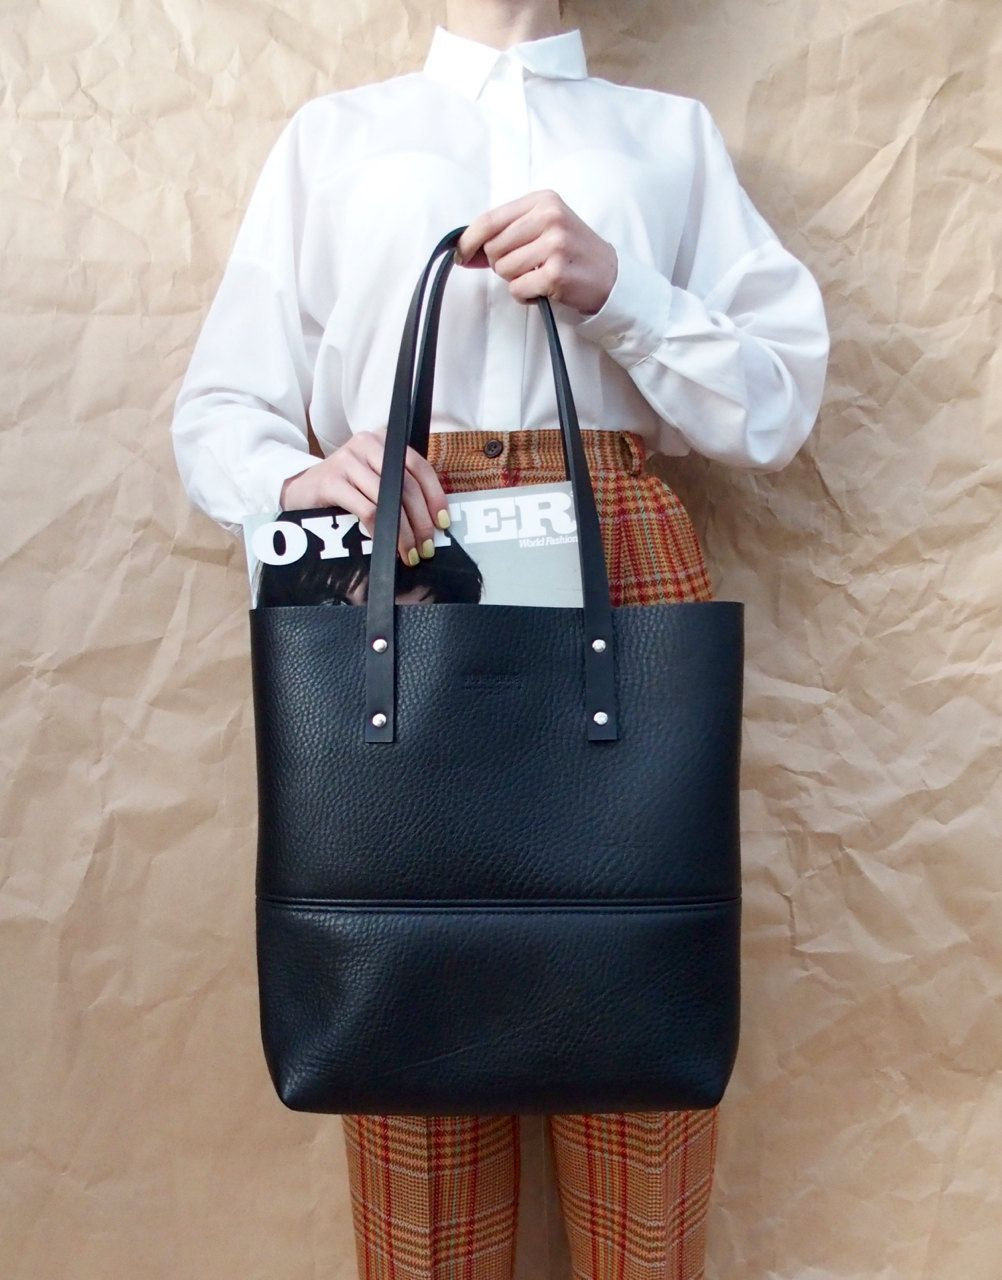 Black Leather Tote Bag Hand Crafted In Australia Tote Leather Bag Handmade Made In Austral Black Leather Tote Bag Leather Tote Bag Black Leather Tote